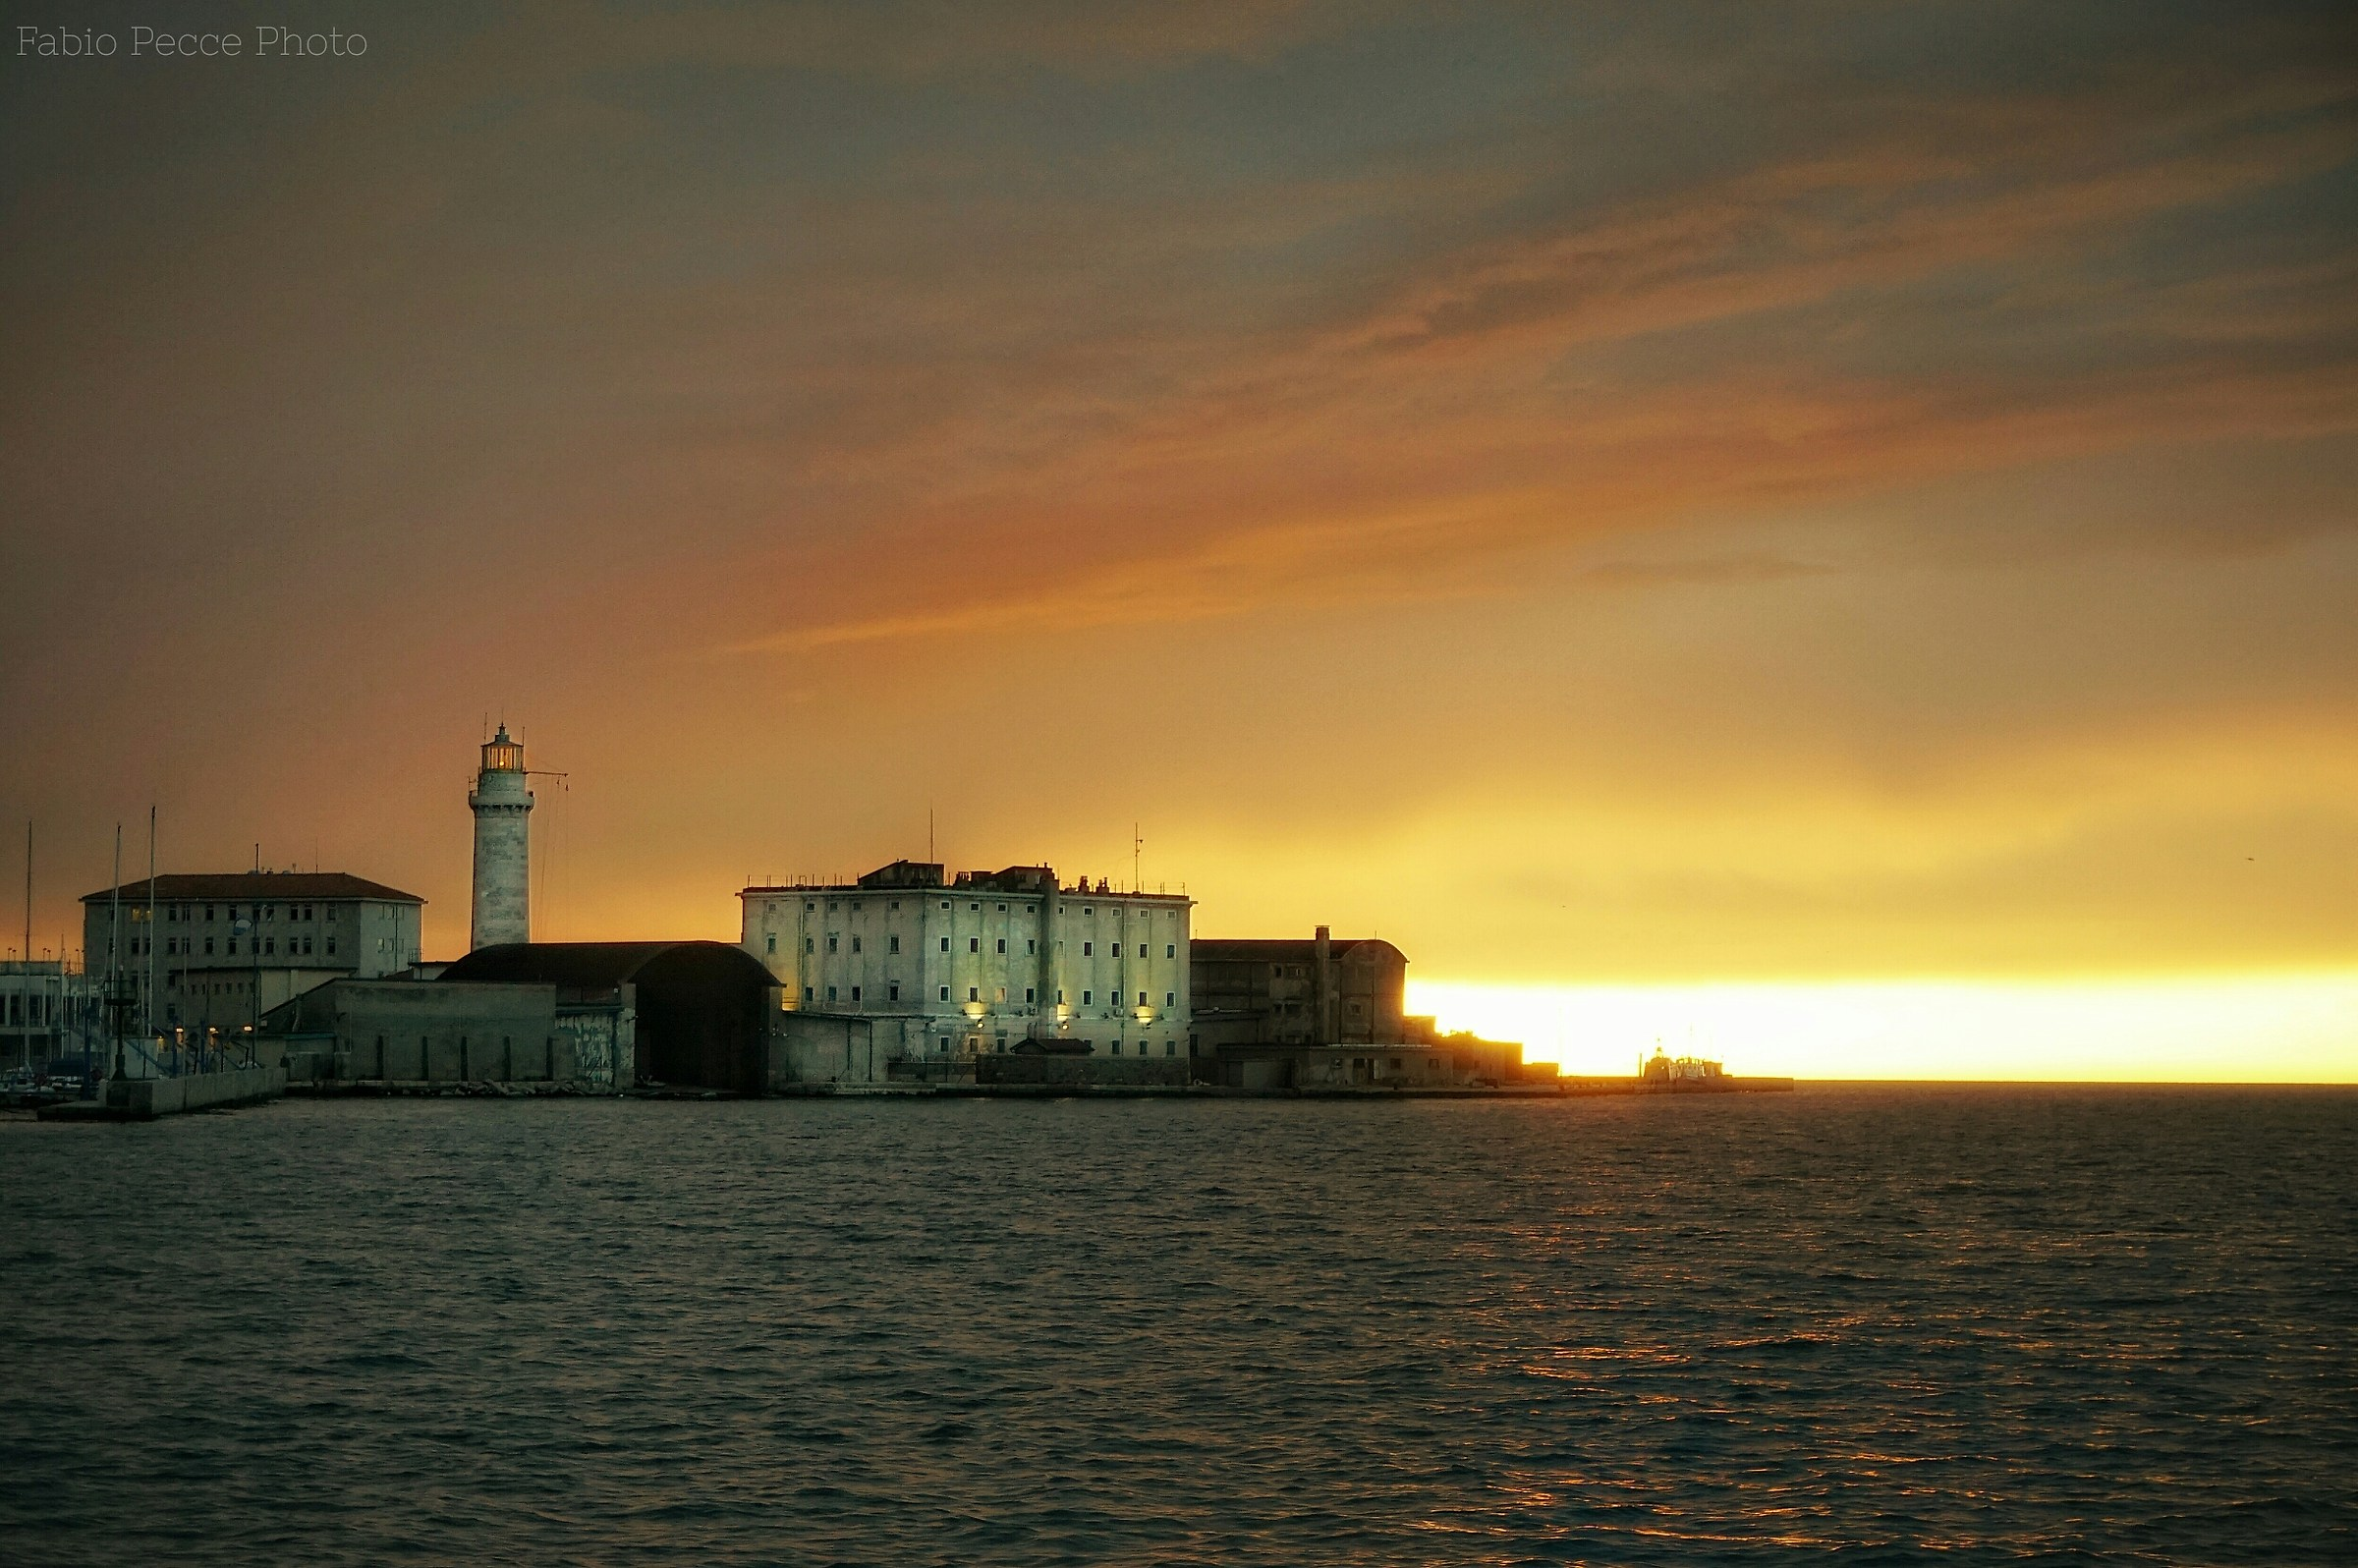 trieste a magical city....